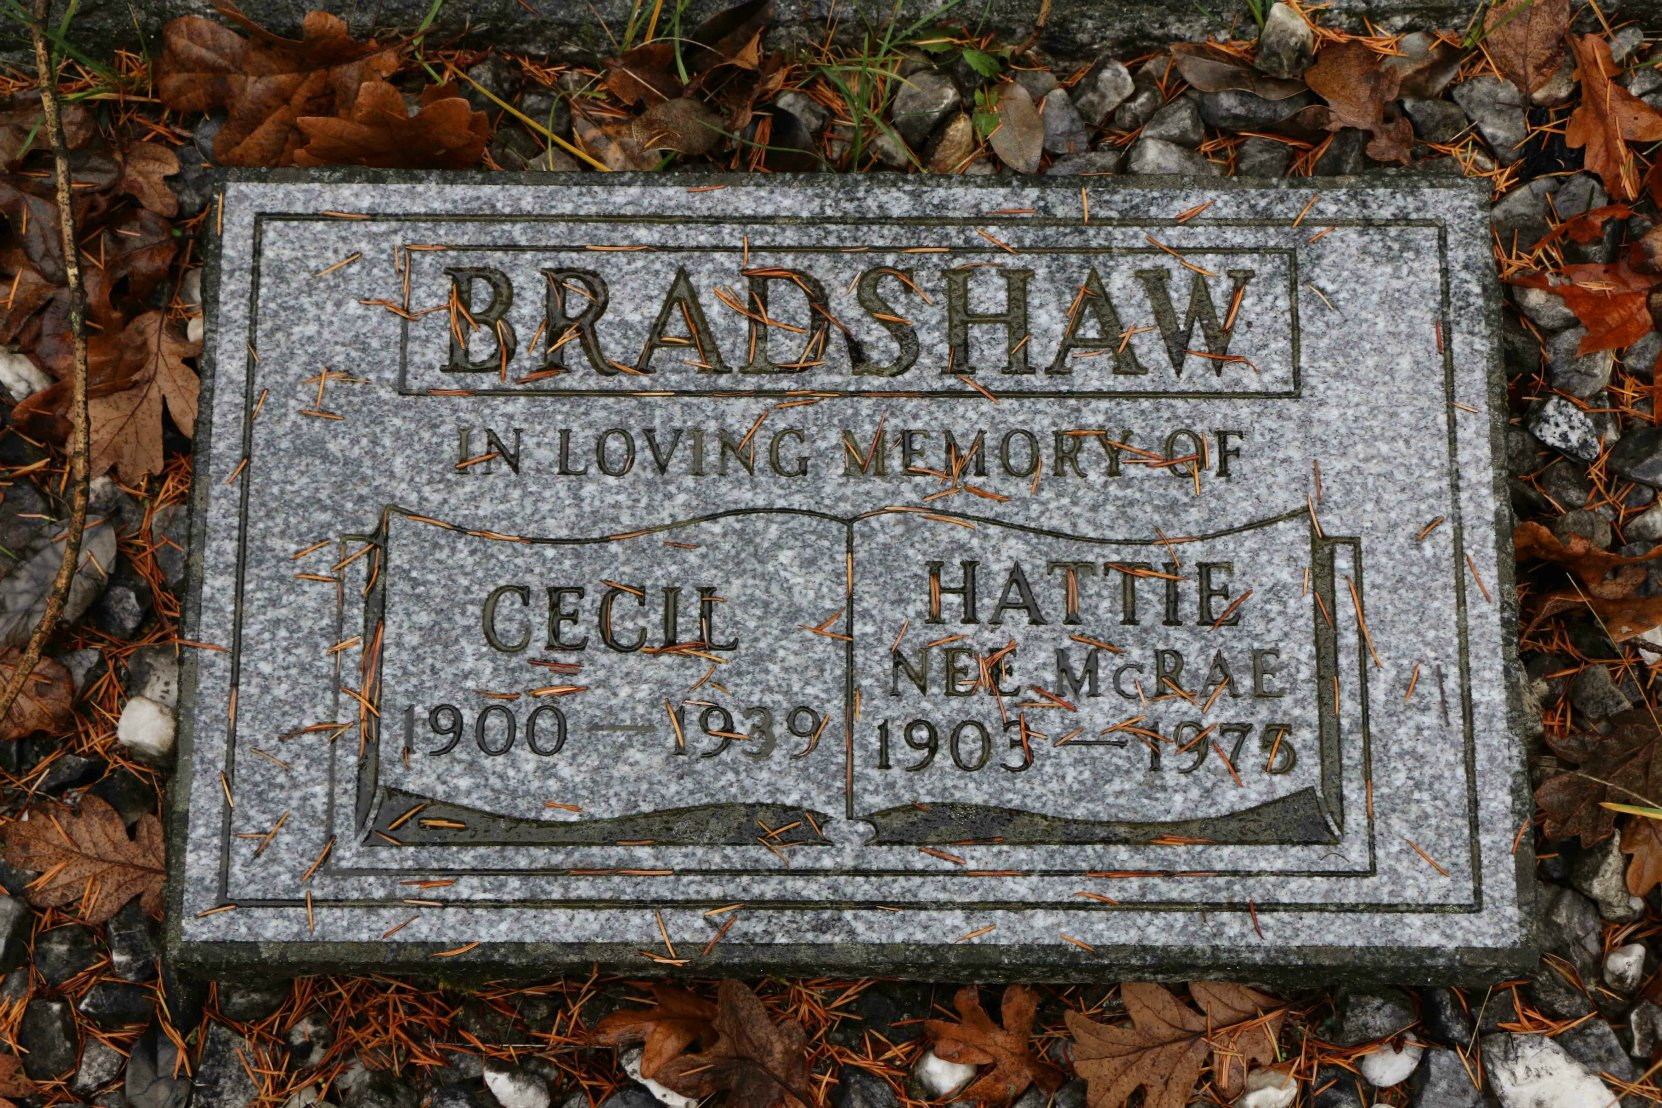 Cecil Bradshaw gravestone, St. Peter's Quamichan Anglican Cemetery, North Cowichan, B.C. (photo by Temple Lodge No. 33 Historian)